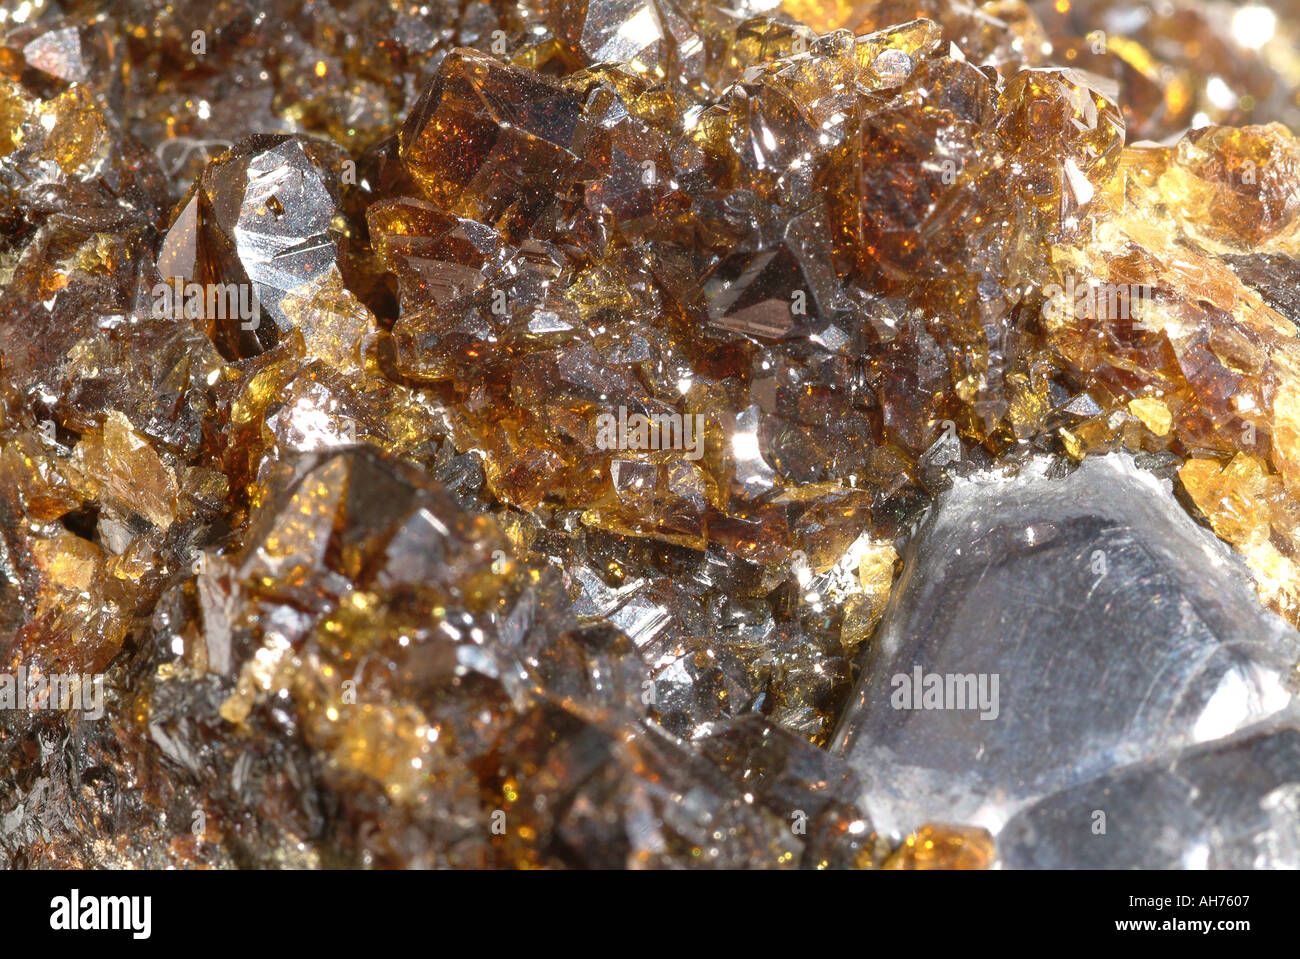 Mineral Sphalerite, Ruby sphalerite translucent honey coloured crystals with single galena crystal, Mogul Silver mines, Tipperary, Ireland - Stock Image